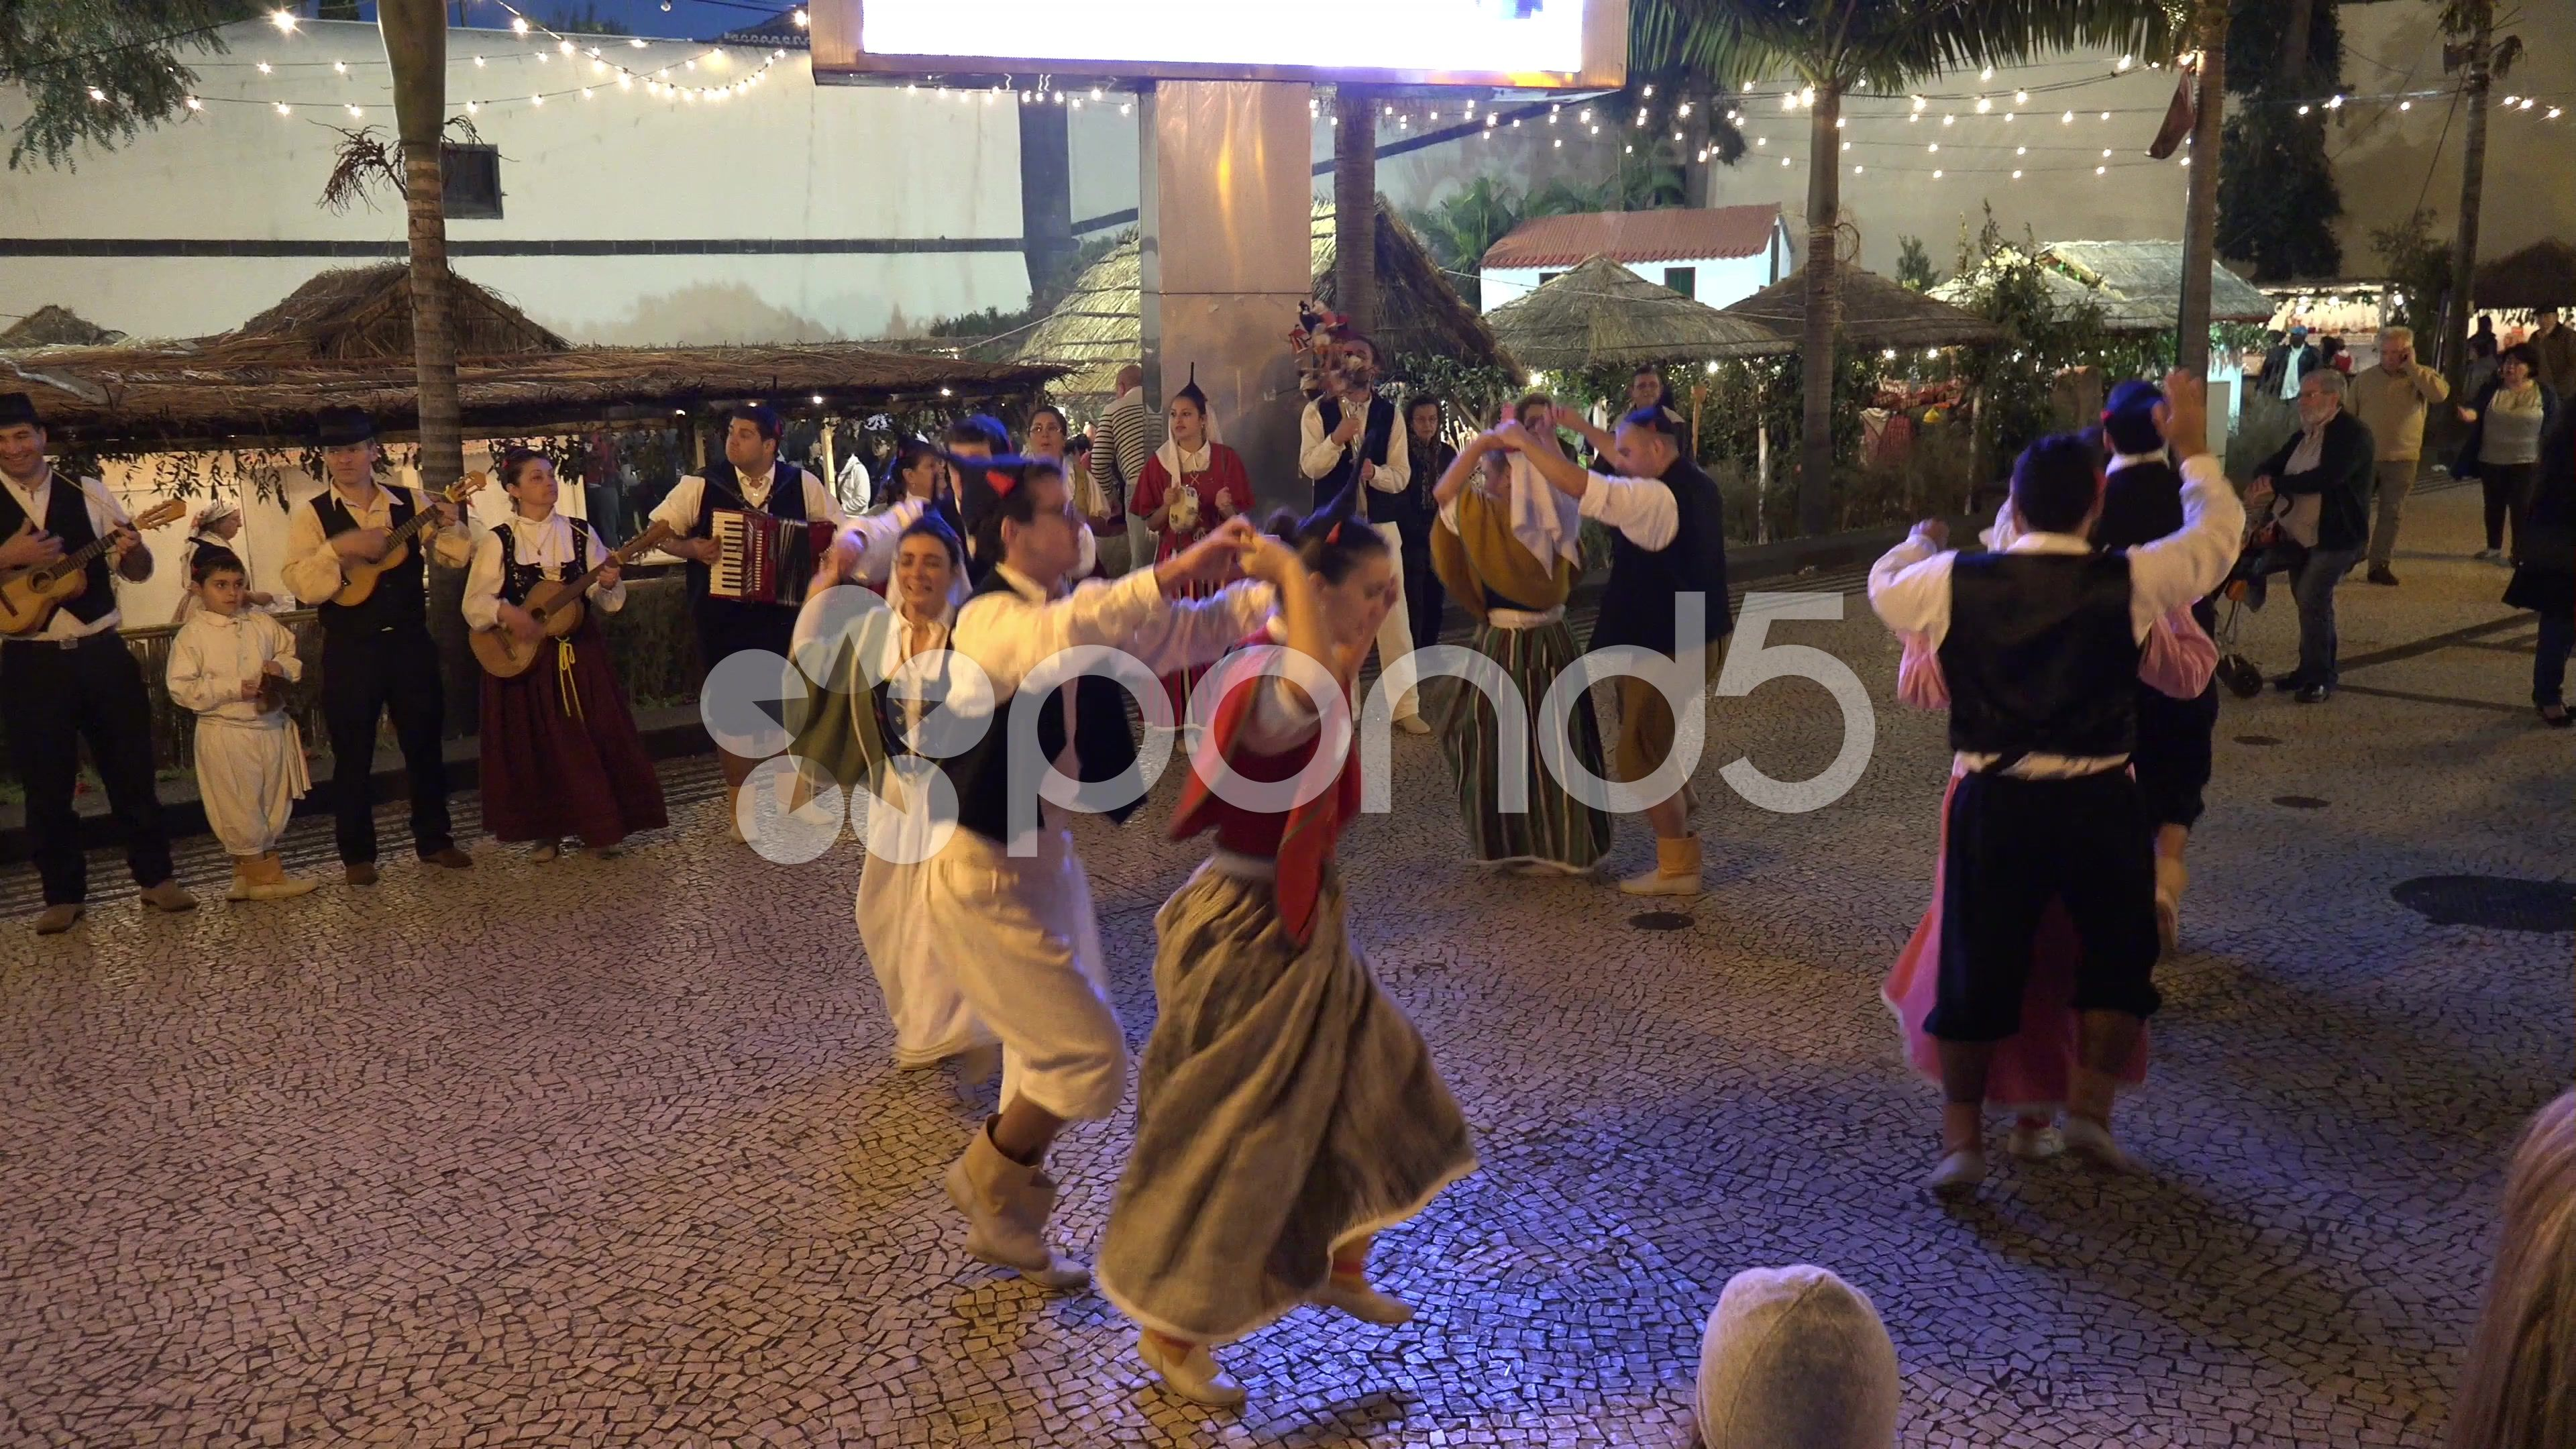 4k Traditional Madeira dance and music street night event - Stock Footage   by Beckhusen